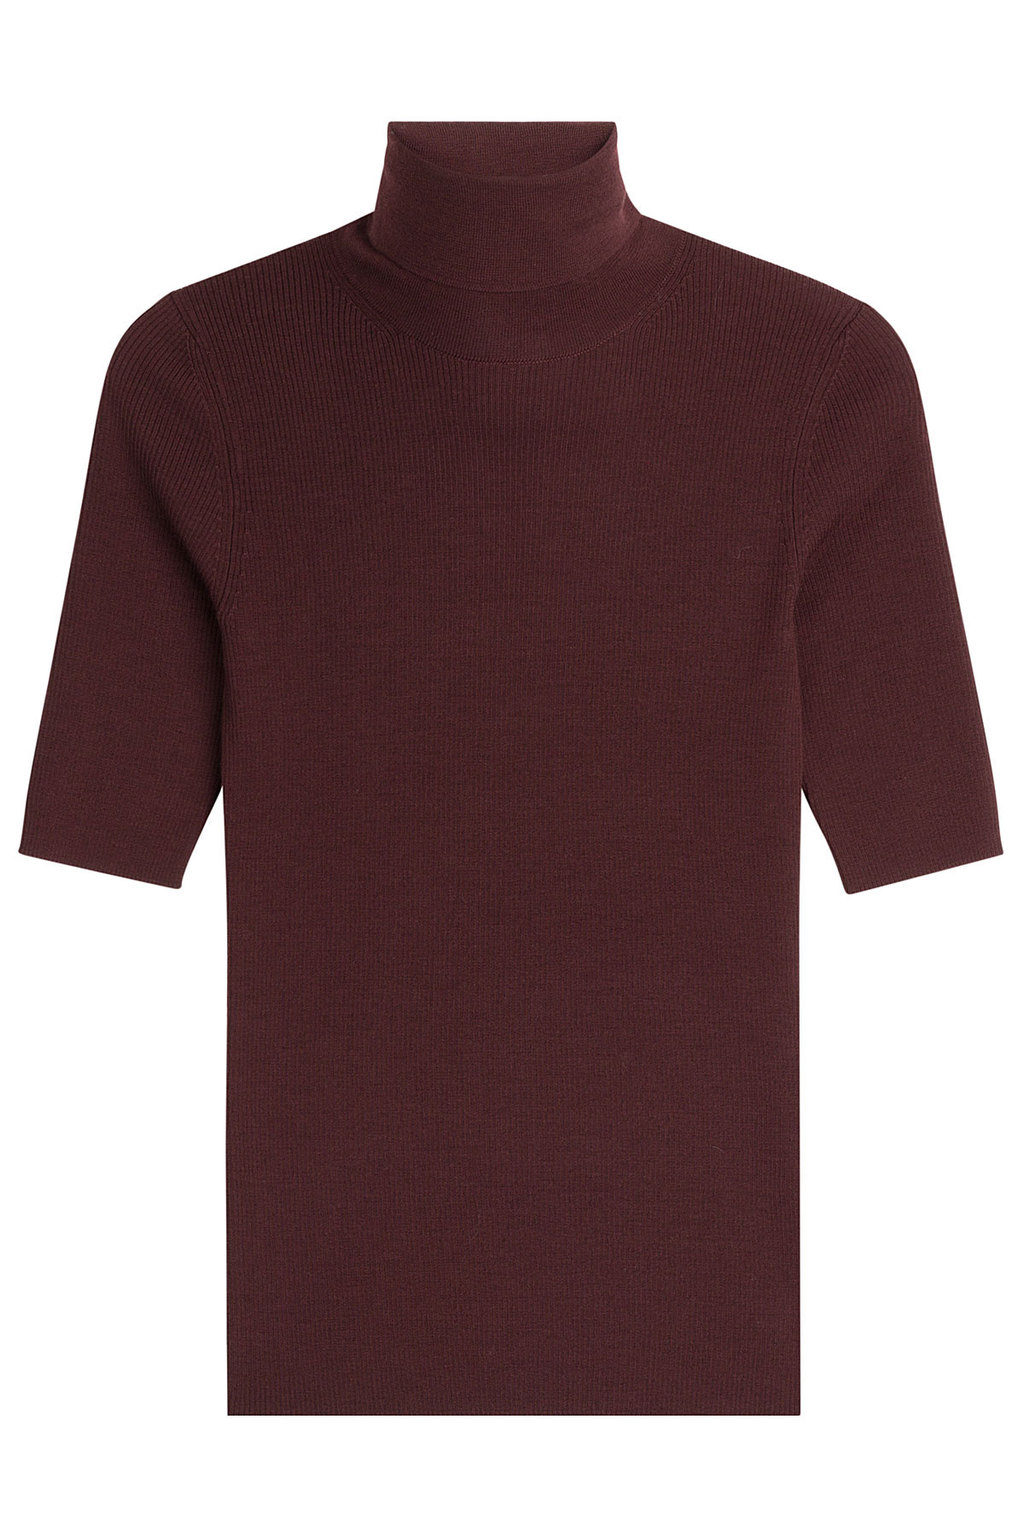 Merino Wool Turtleneck With Short Sleeves - pattern: plain; neckline: roll neck; predominant colour: aubergine; occasions: casual; length: standard; style: top; fibres: wool - 100%; fit: body skimming; sleeve length: short sleeve; sleeve style: standard; texture group: knits/crochet; pattern type: knitted - fine stitch; season: a/w 2016; wardrobe: highlight